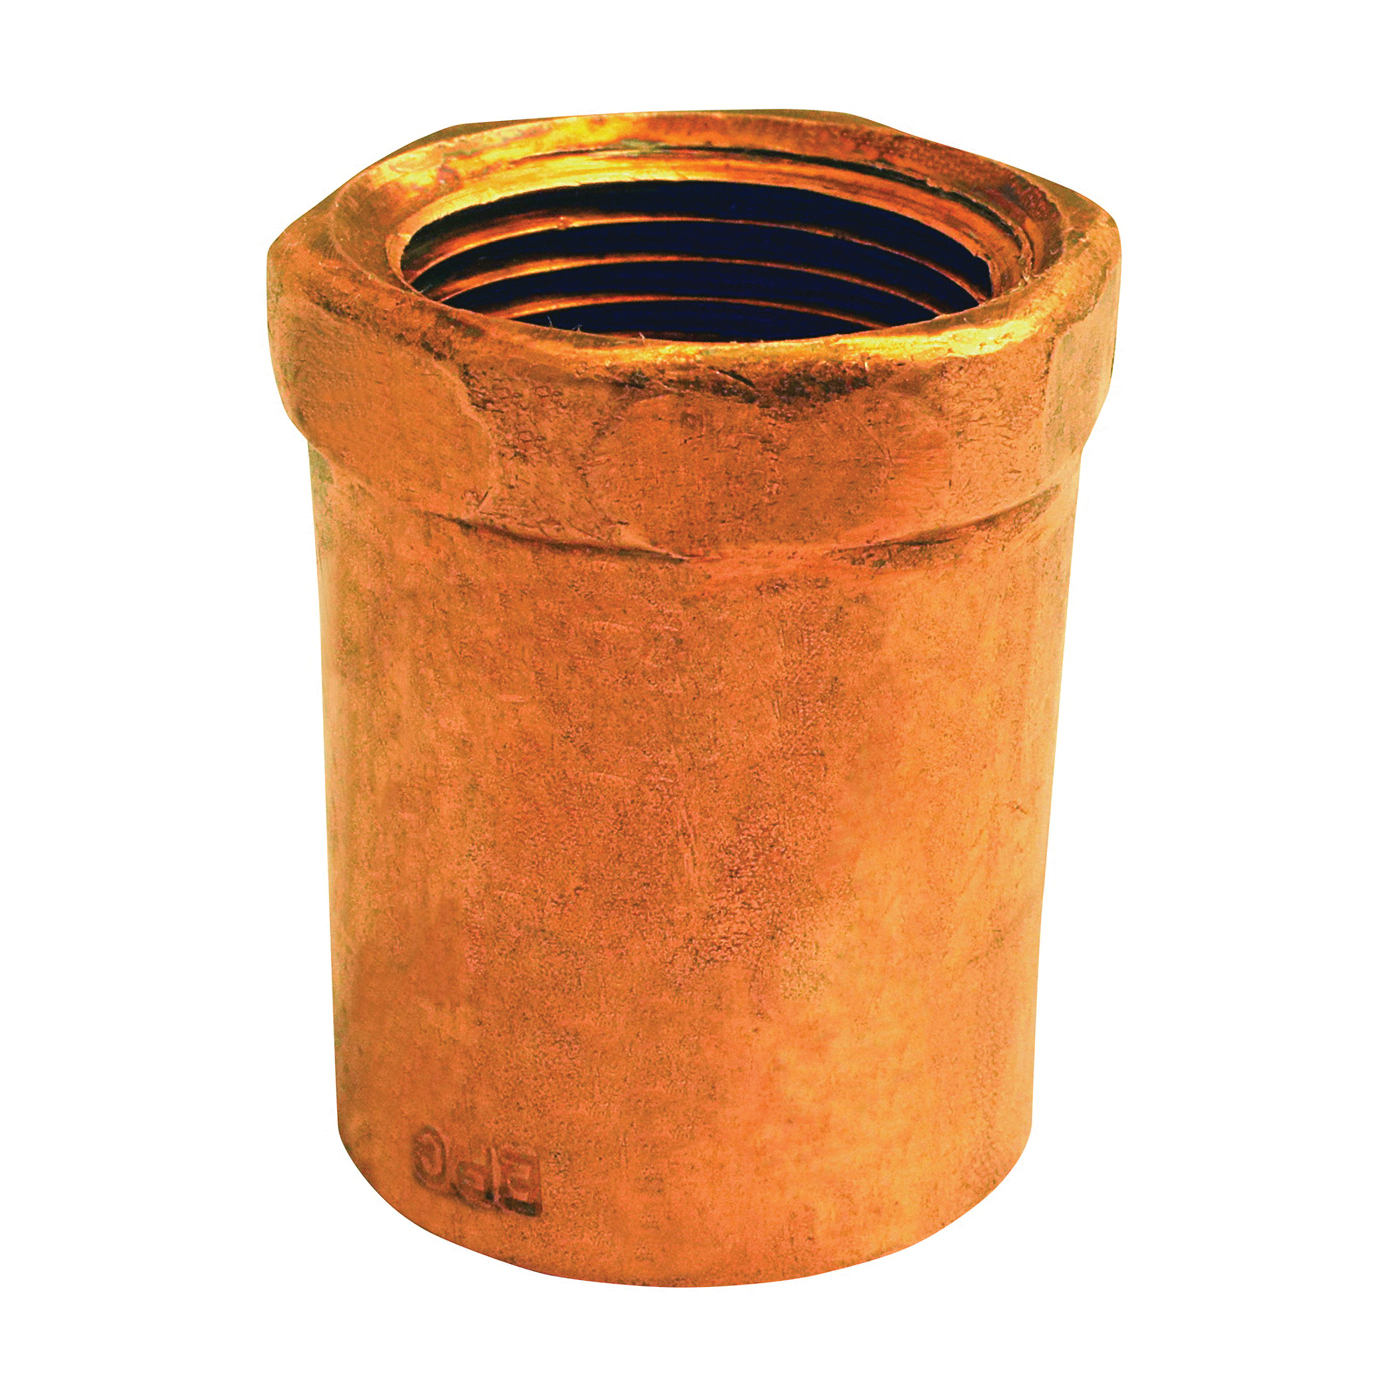 Picture of EPC 103R Series 30156 Reducing Adapter, 3/4 x 1/2 in, Sweat x FNPT, Copper